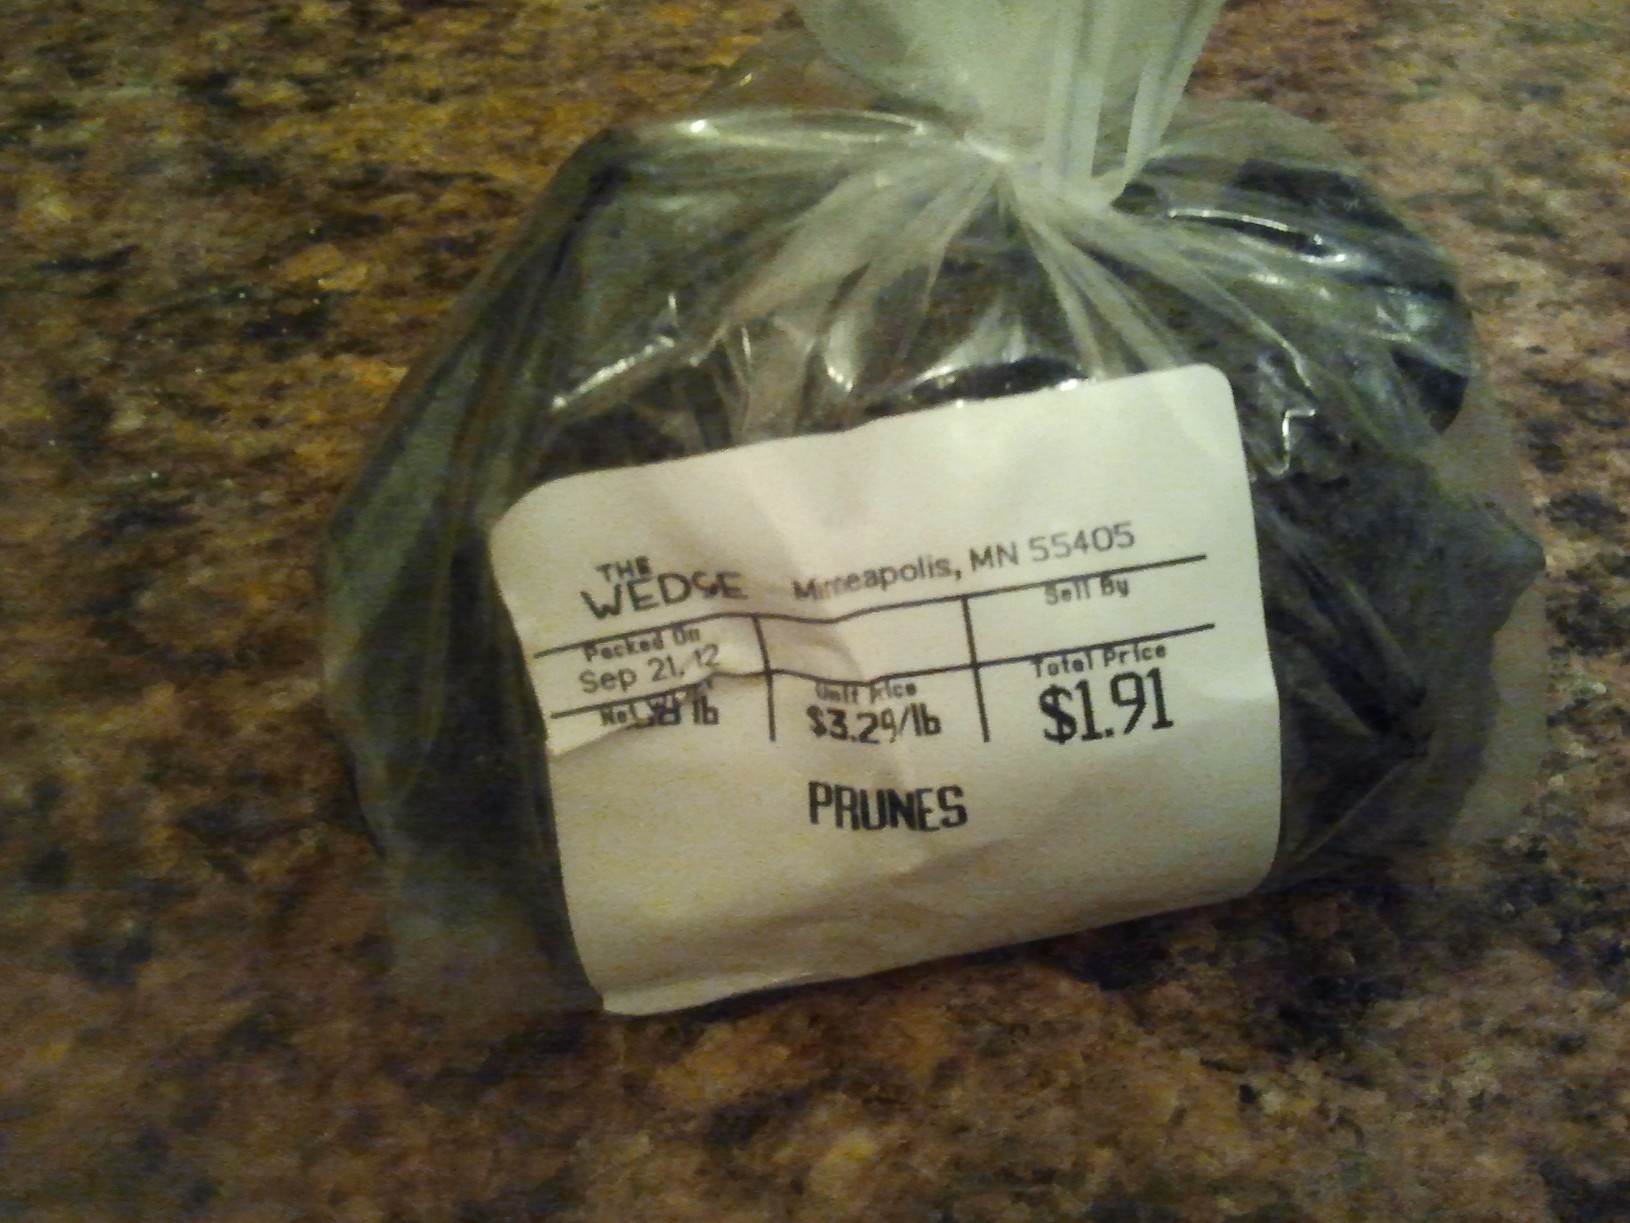 Prunes, a.k.a. Dried Plums